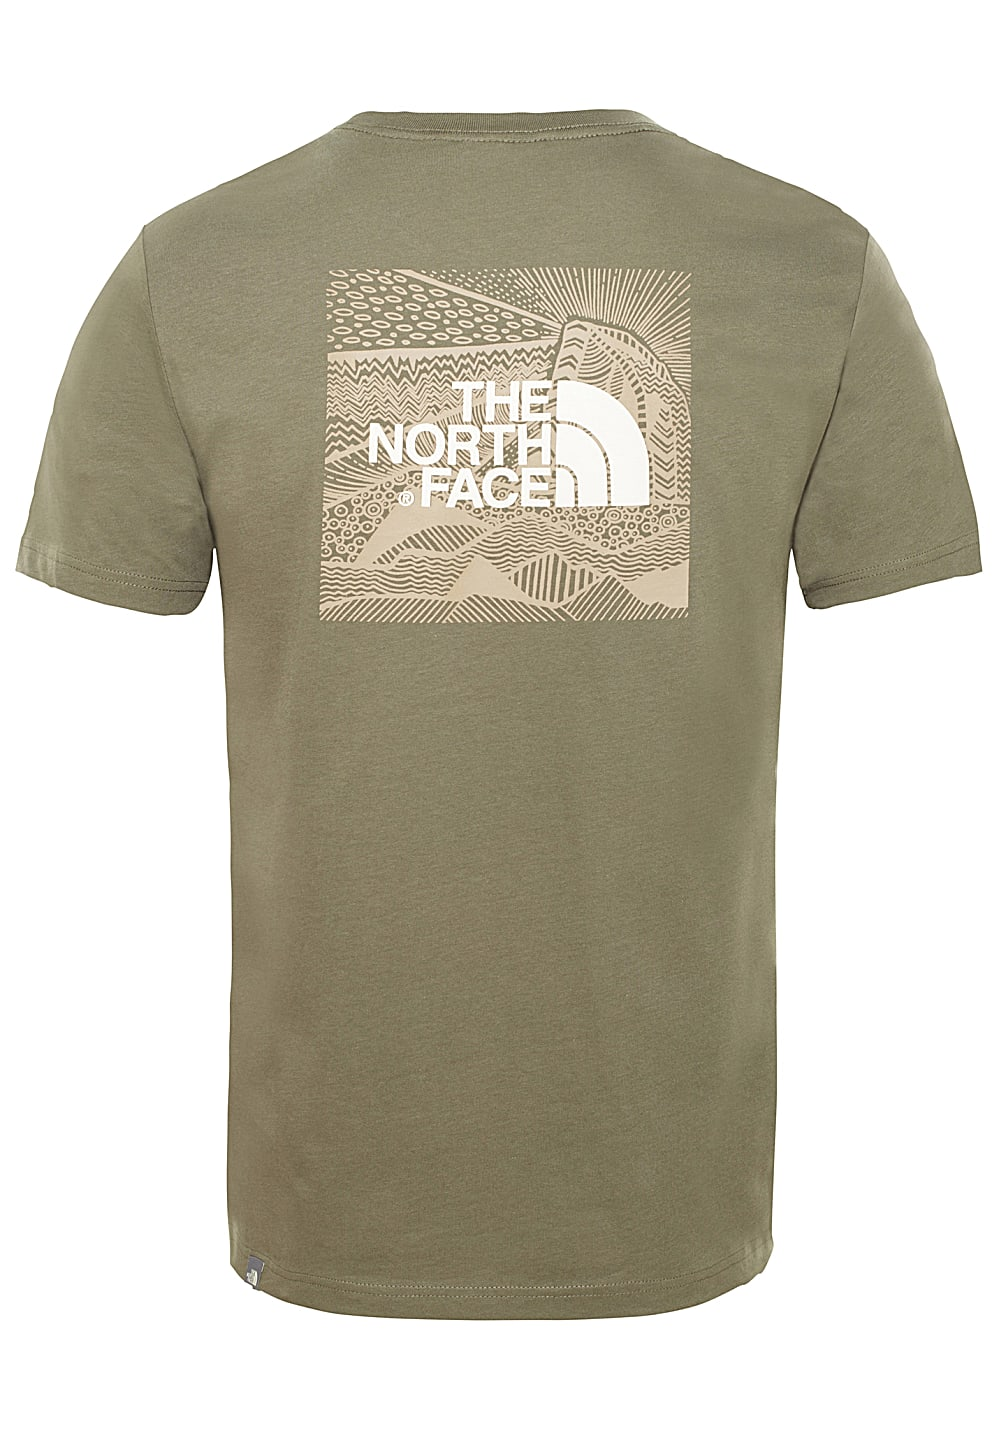 0687224fb THE NORTH FACE Redbox Celebration - T-Shirt for Men - Green